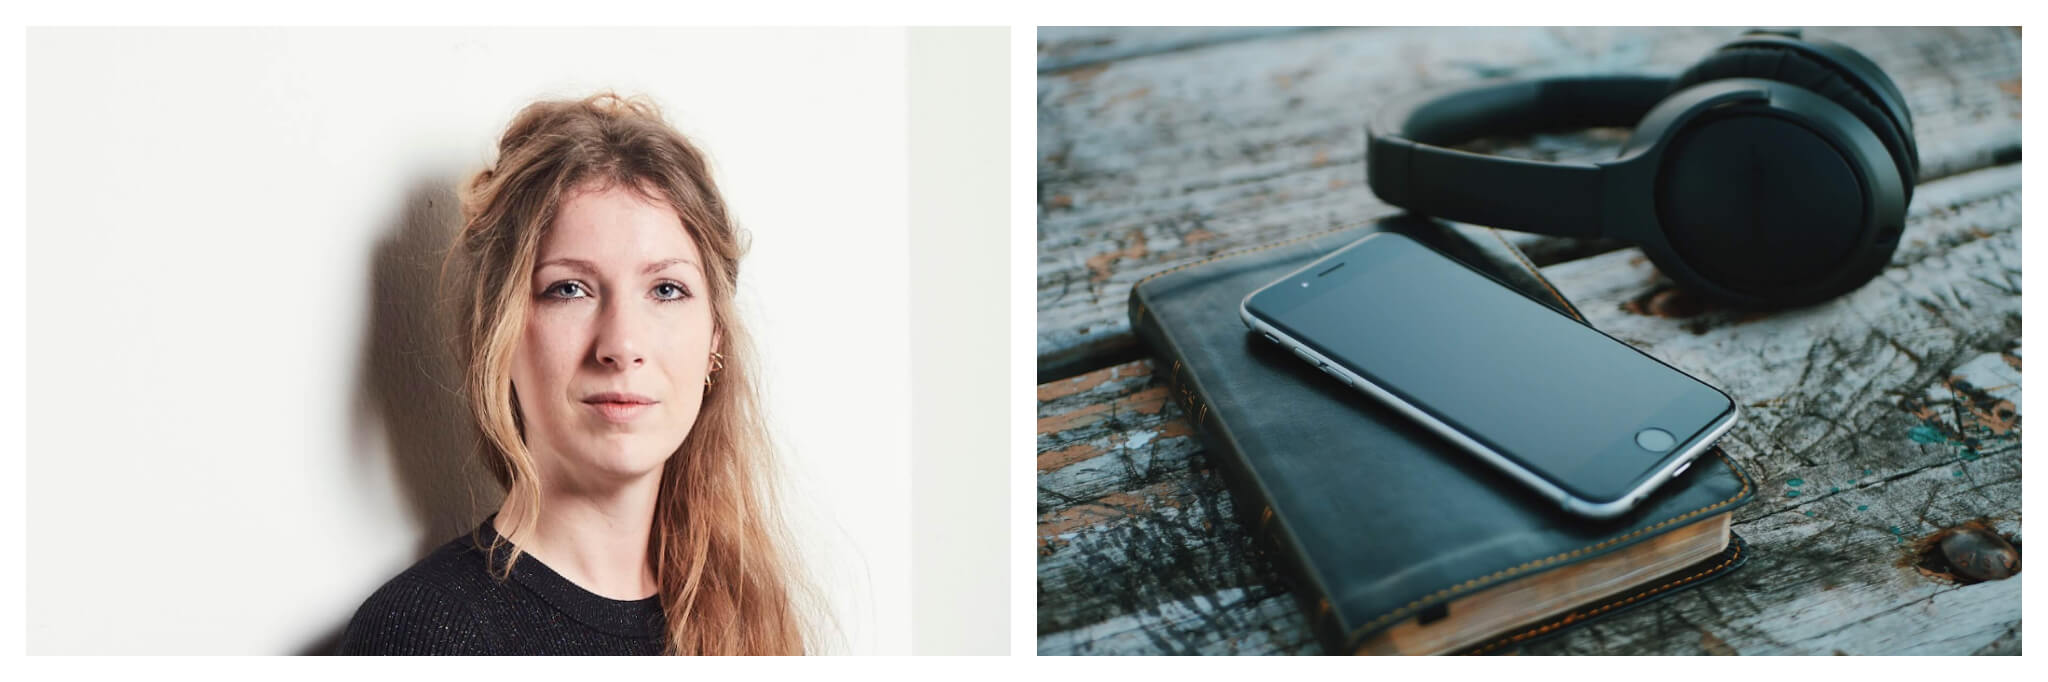 Left: A portrait of Camille Juzeau, host of Les Baladeurs podcast, standing against a blank white wall, Right: A photo of a pair of large headphonrs, an iphone and a journal on a wooden table